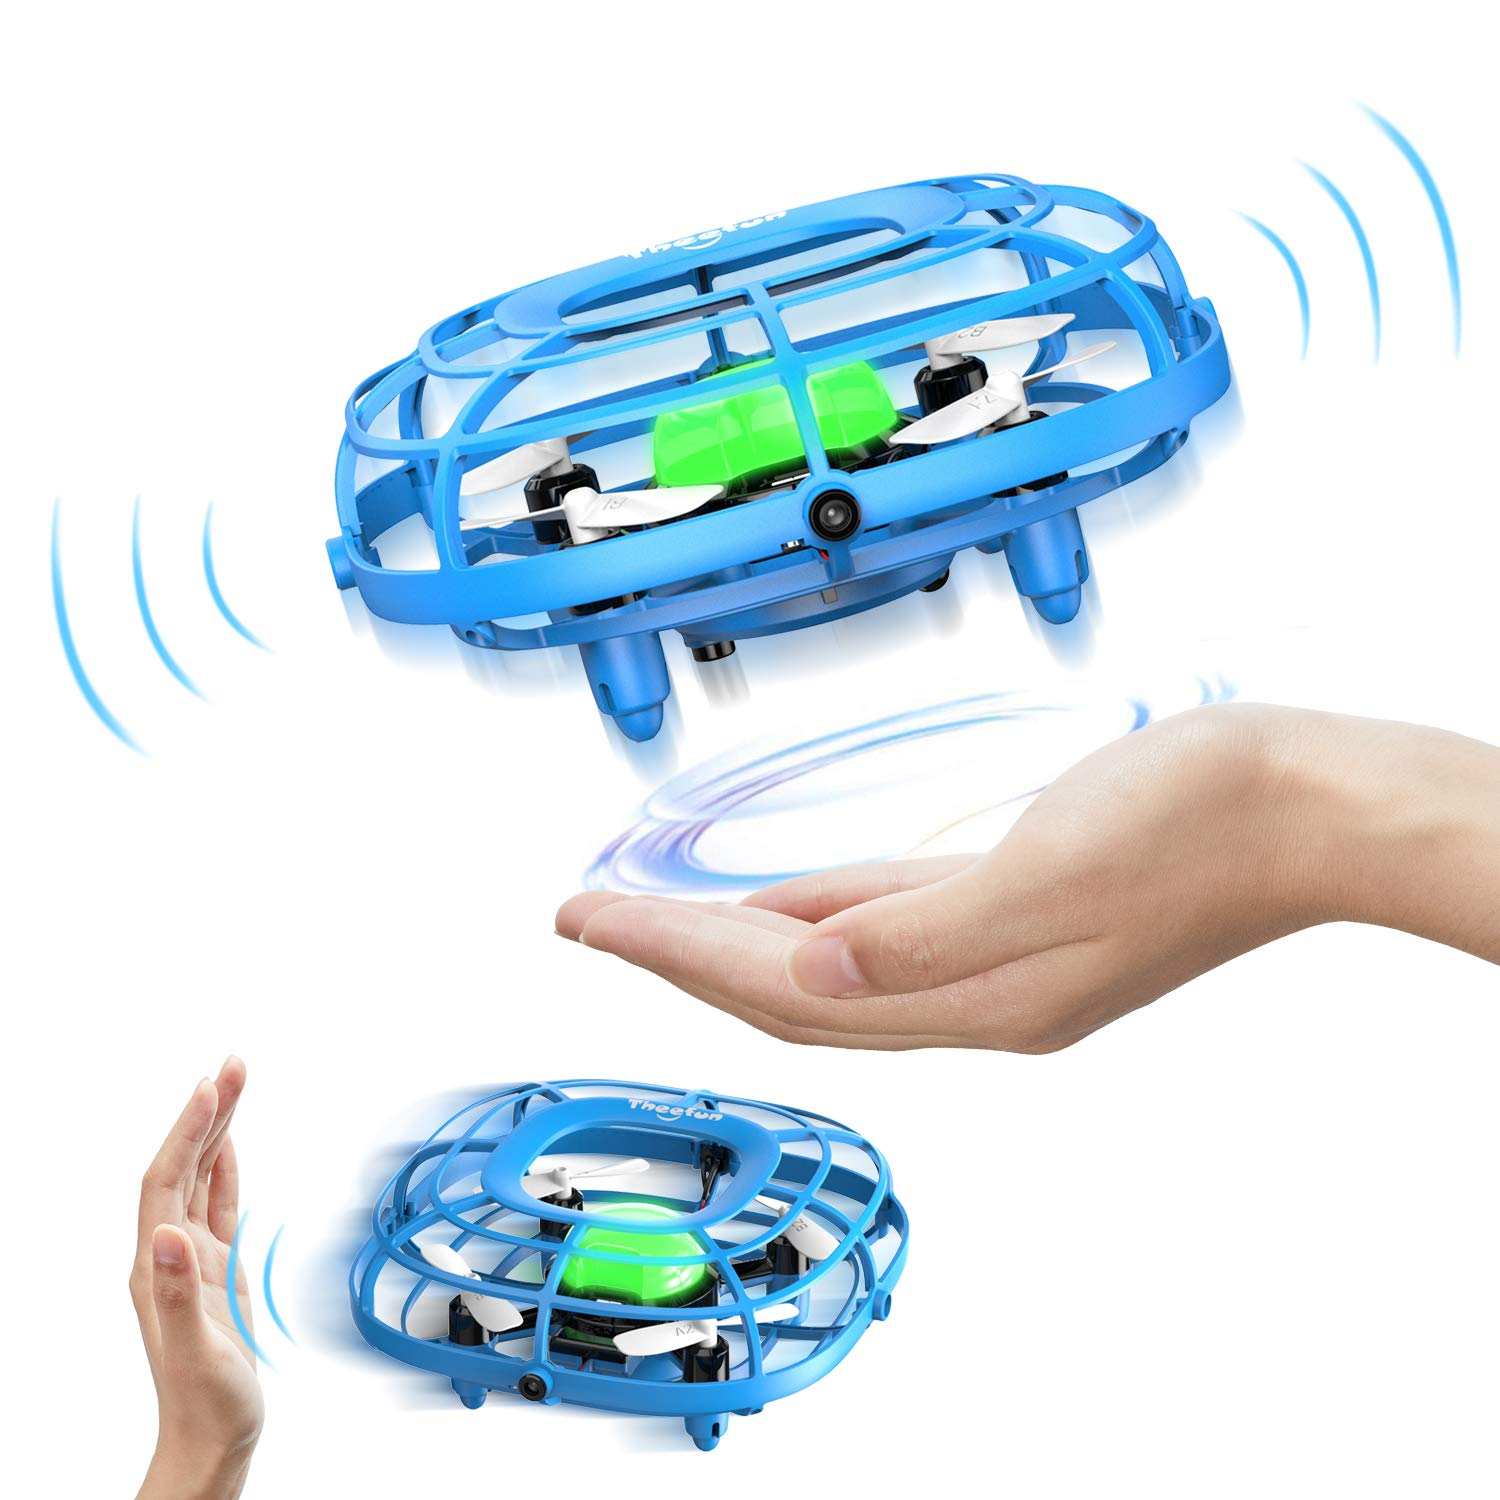 Theefun Hand Operated Drone, Flying Quadcopter Toys with 2 Speed and LED Light for Kids, Boys and Girls